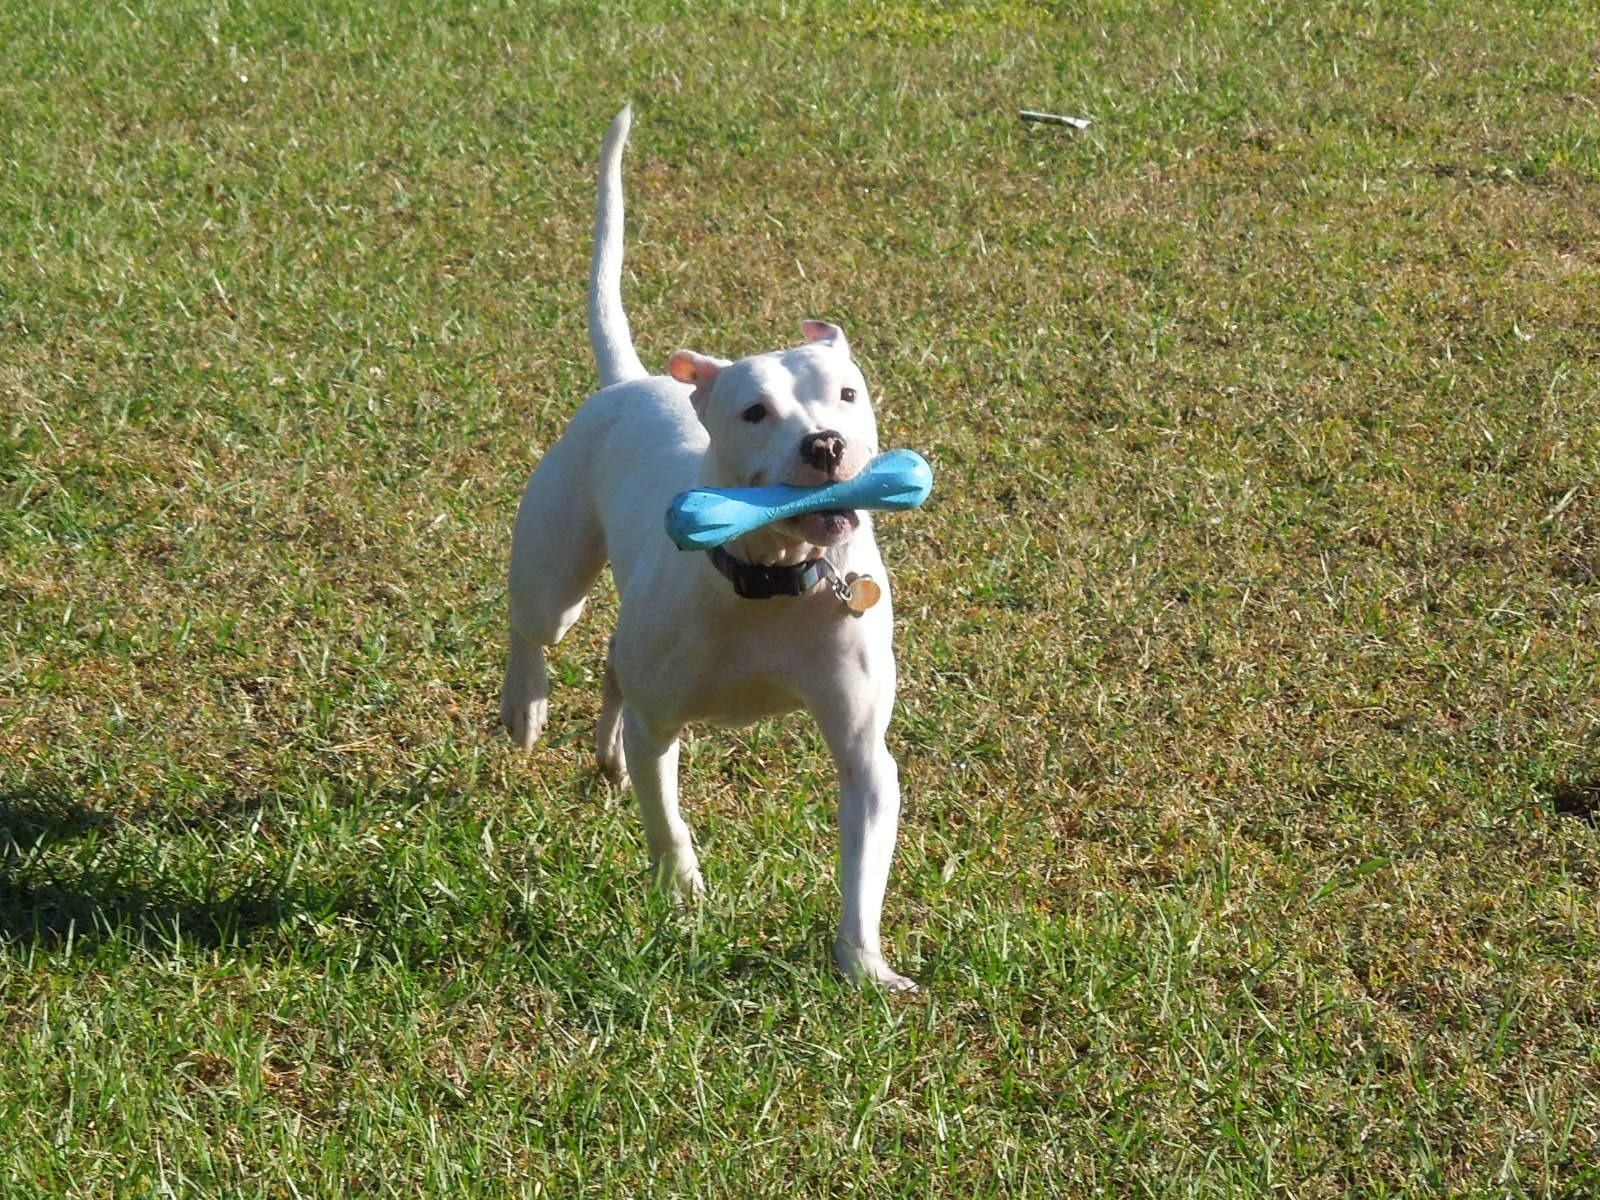 Reviewer's dog playing with the toy outside